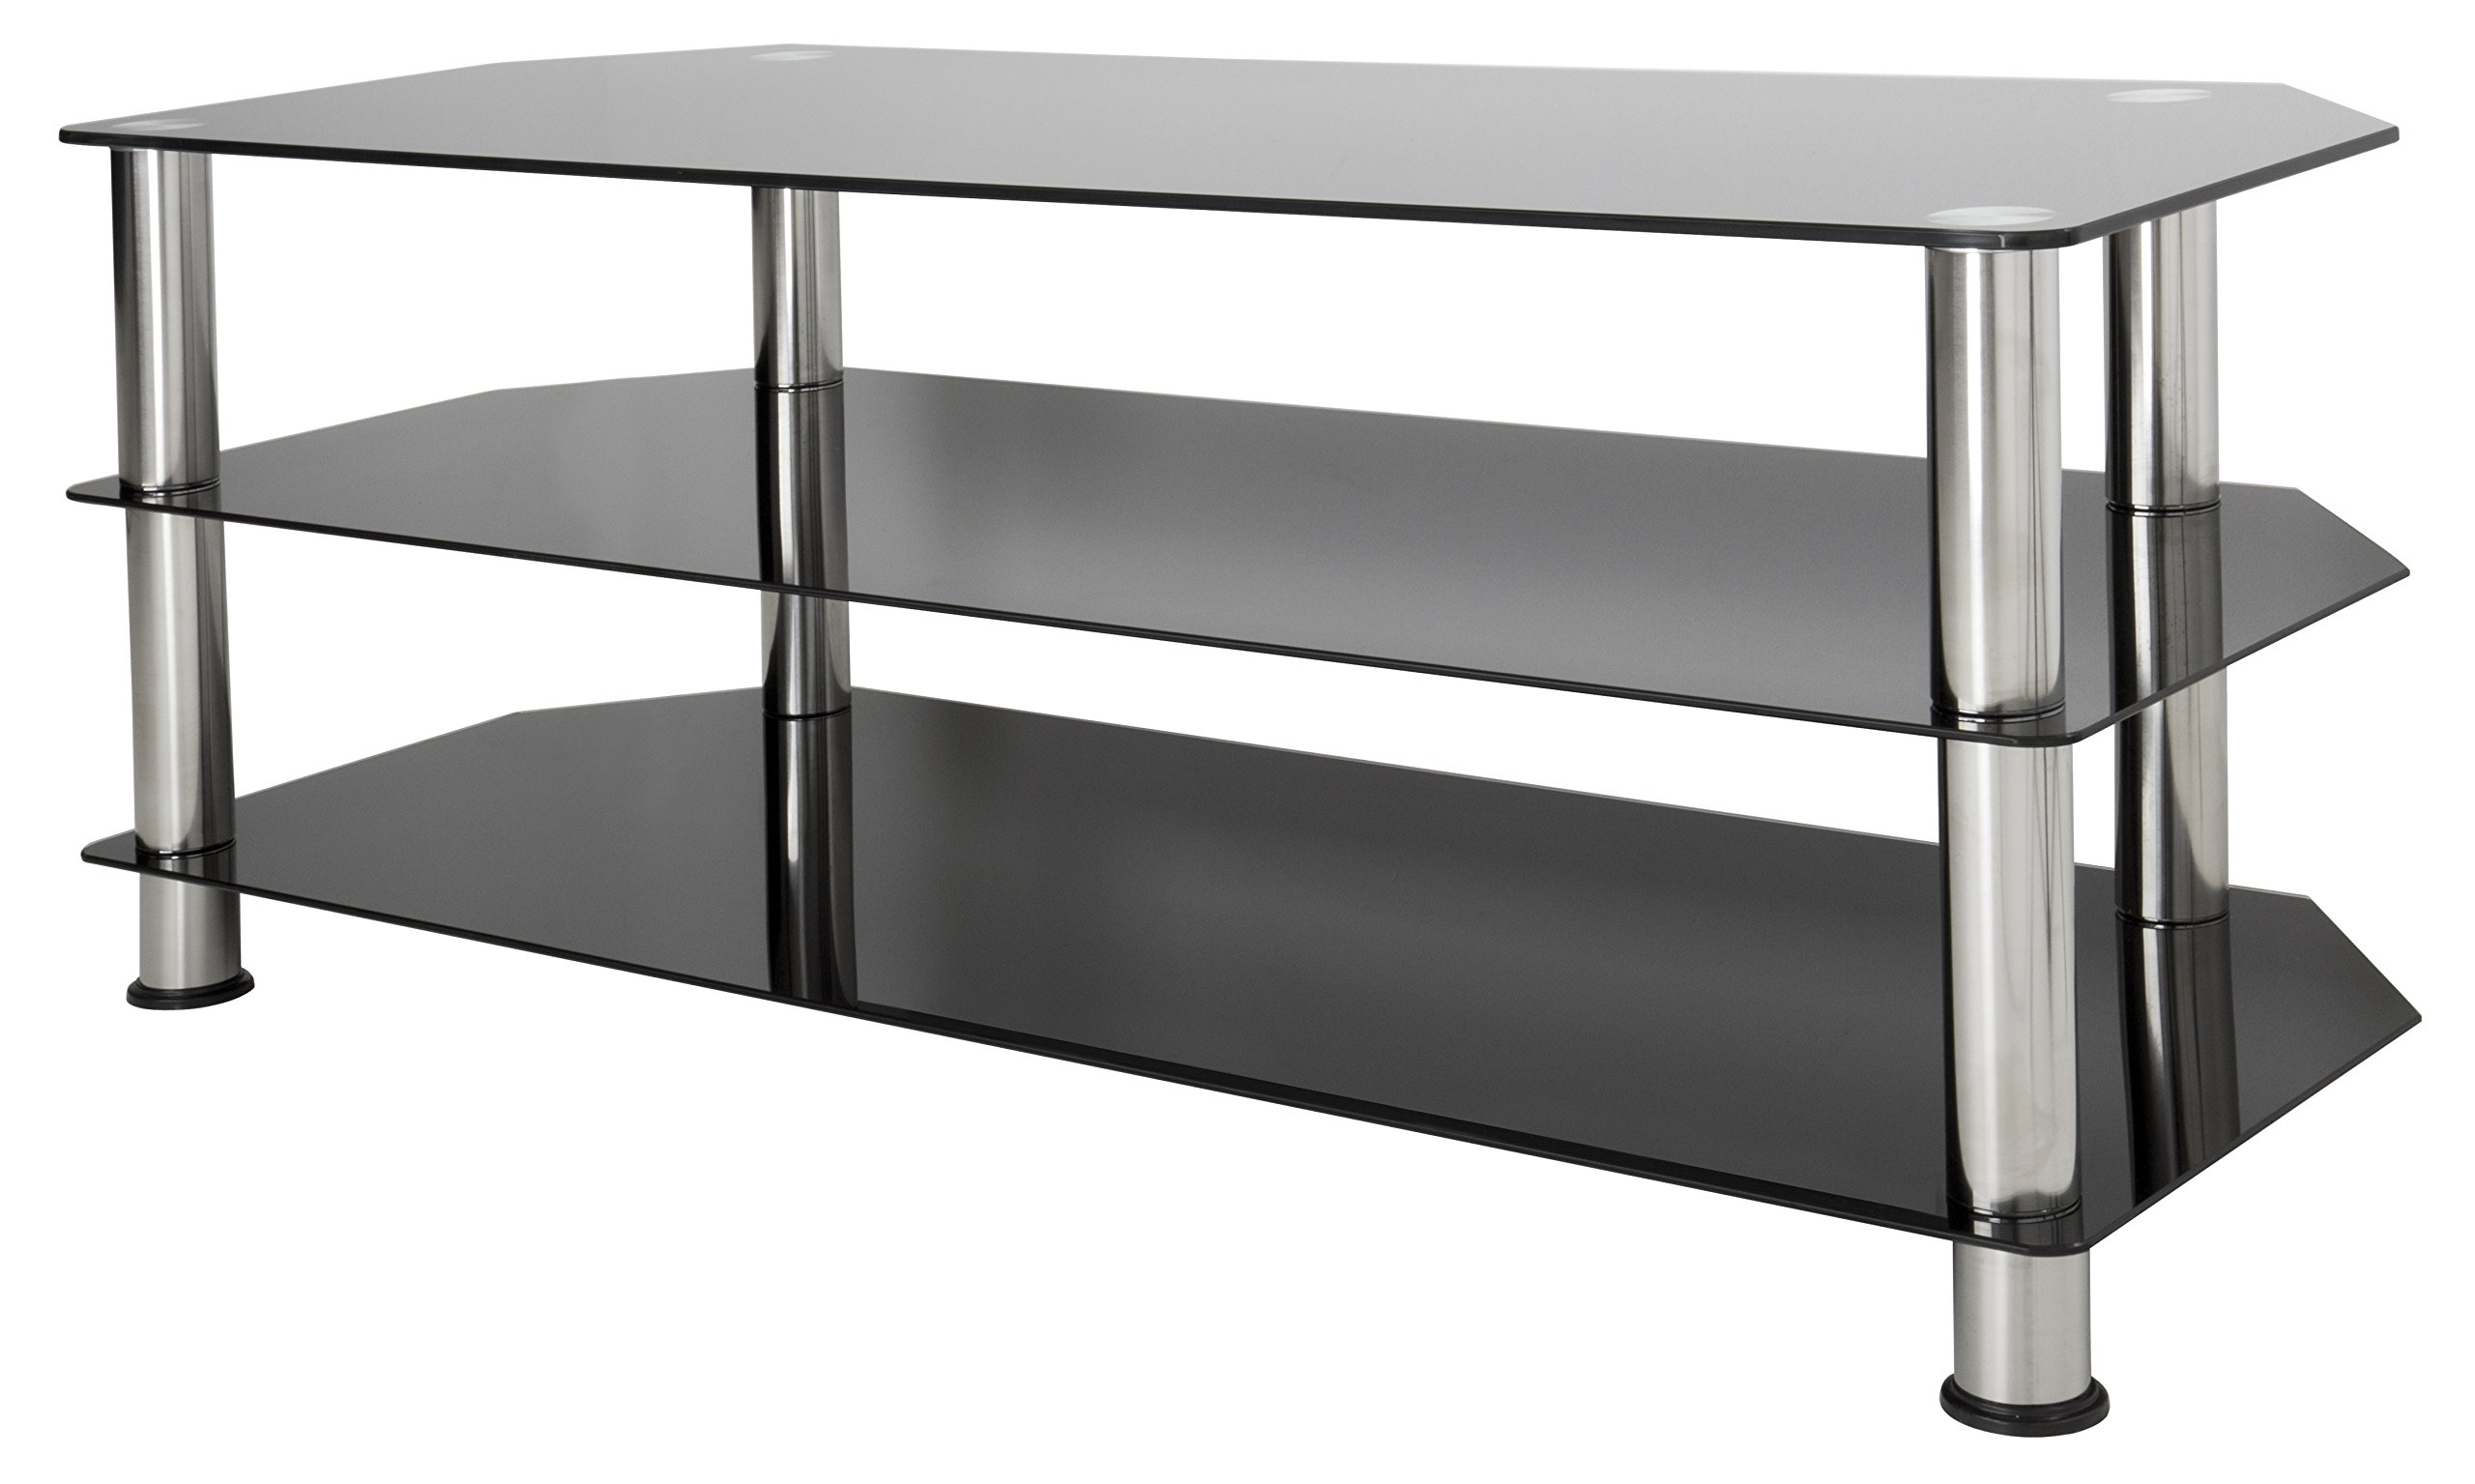 AVF SDC1140-A TV Stand for Up to 55-Inch TVs, Black Glass, Chrome Legs by AVF